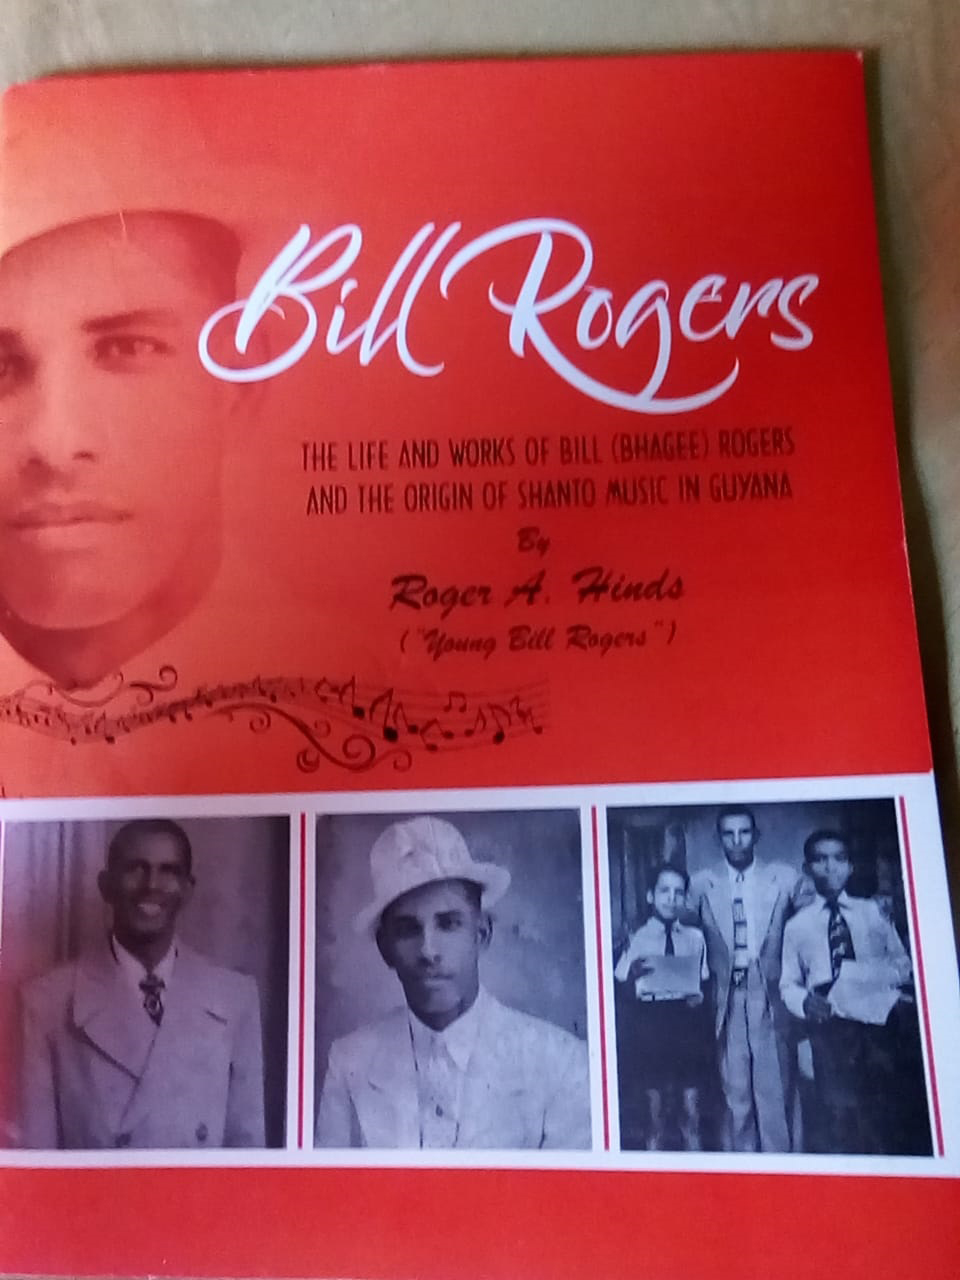 The cover of the Bill Rogers autobiography